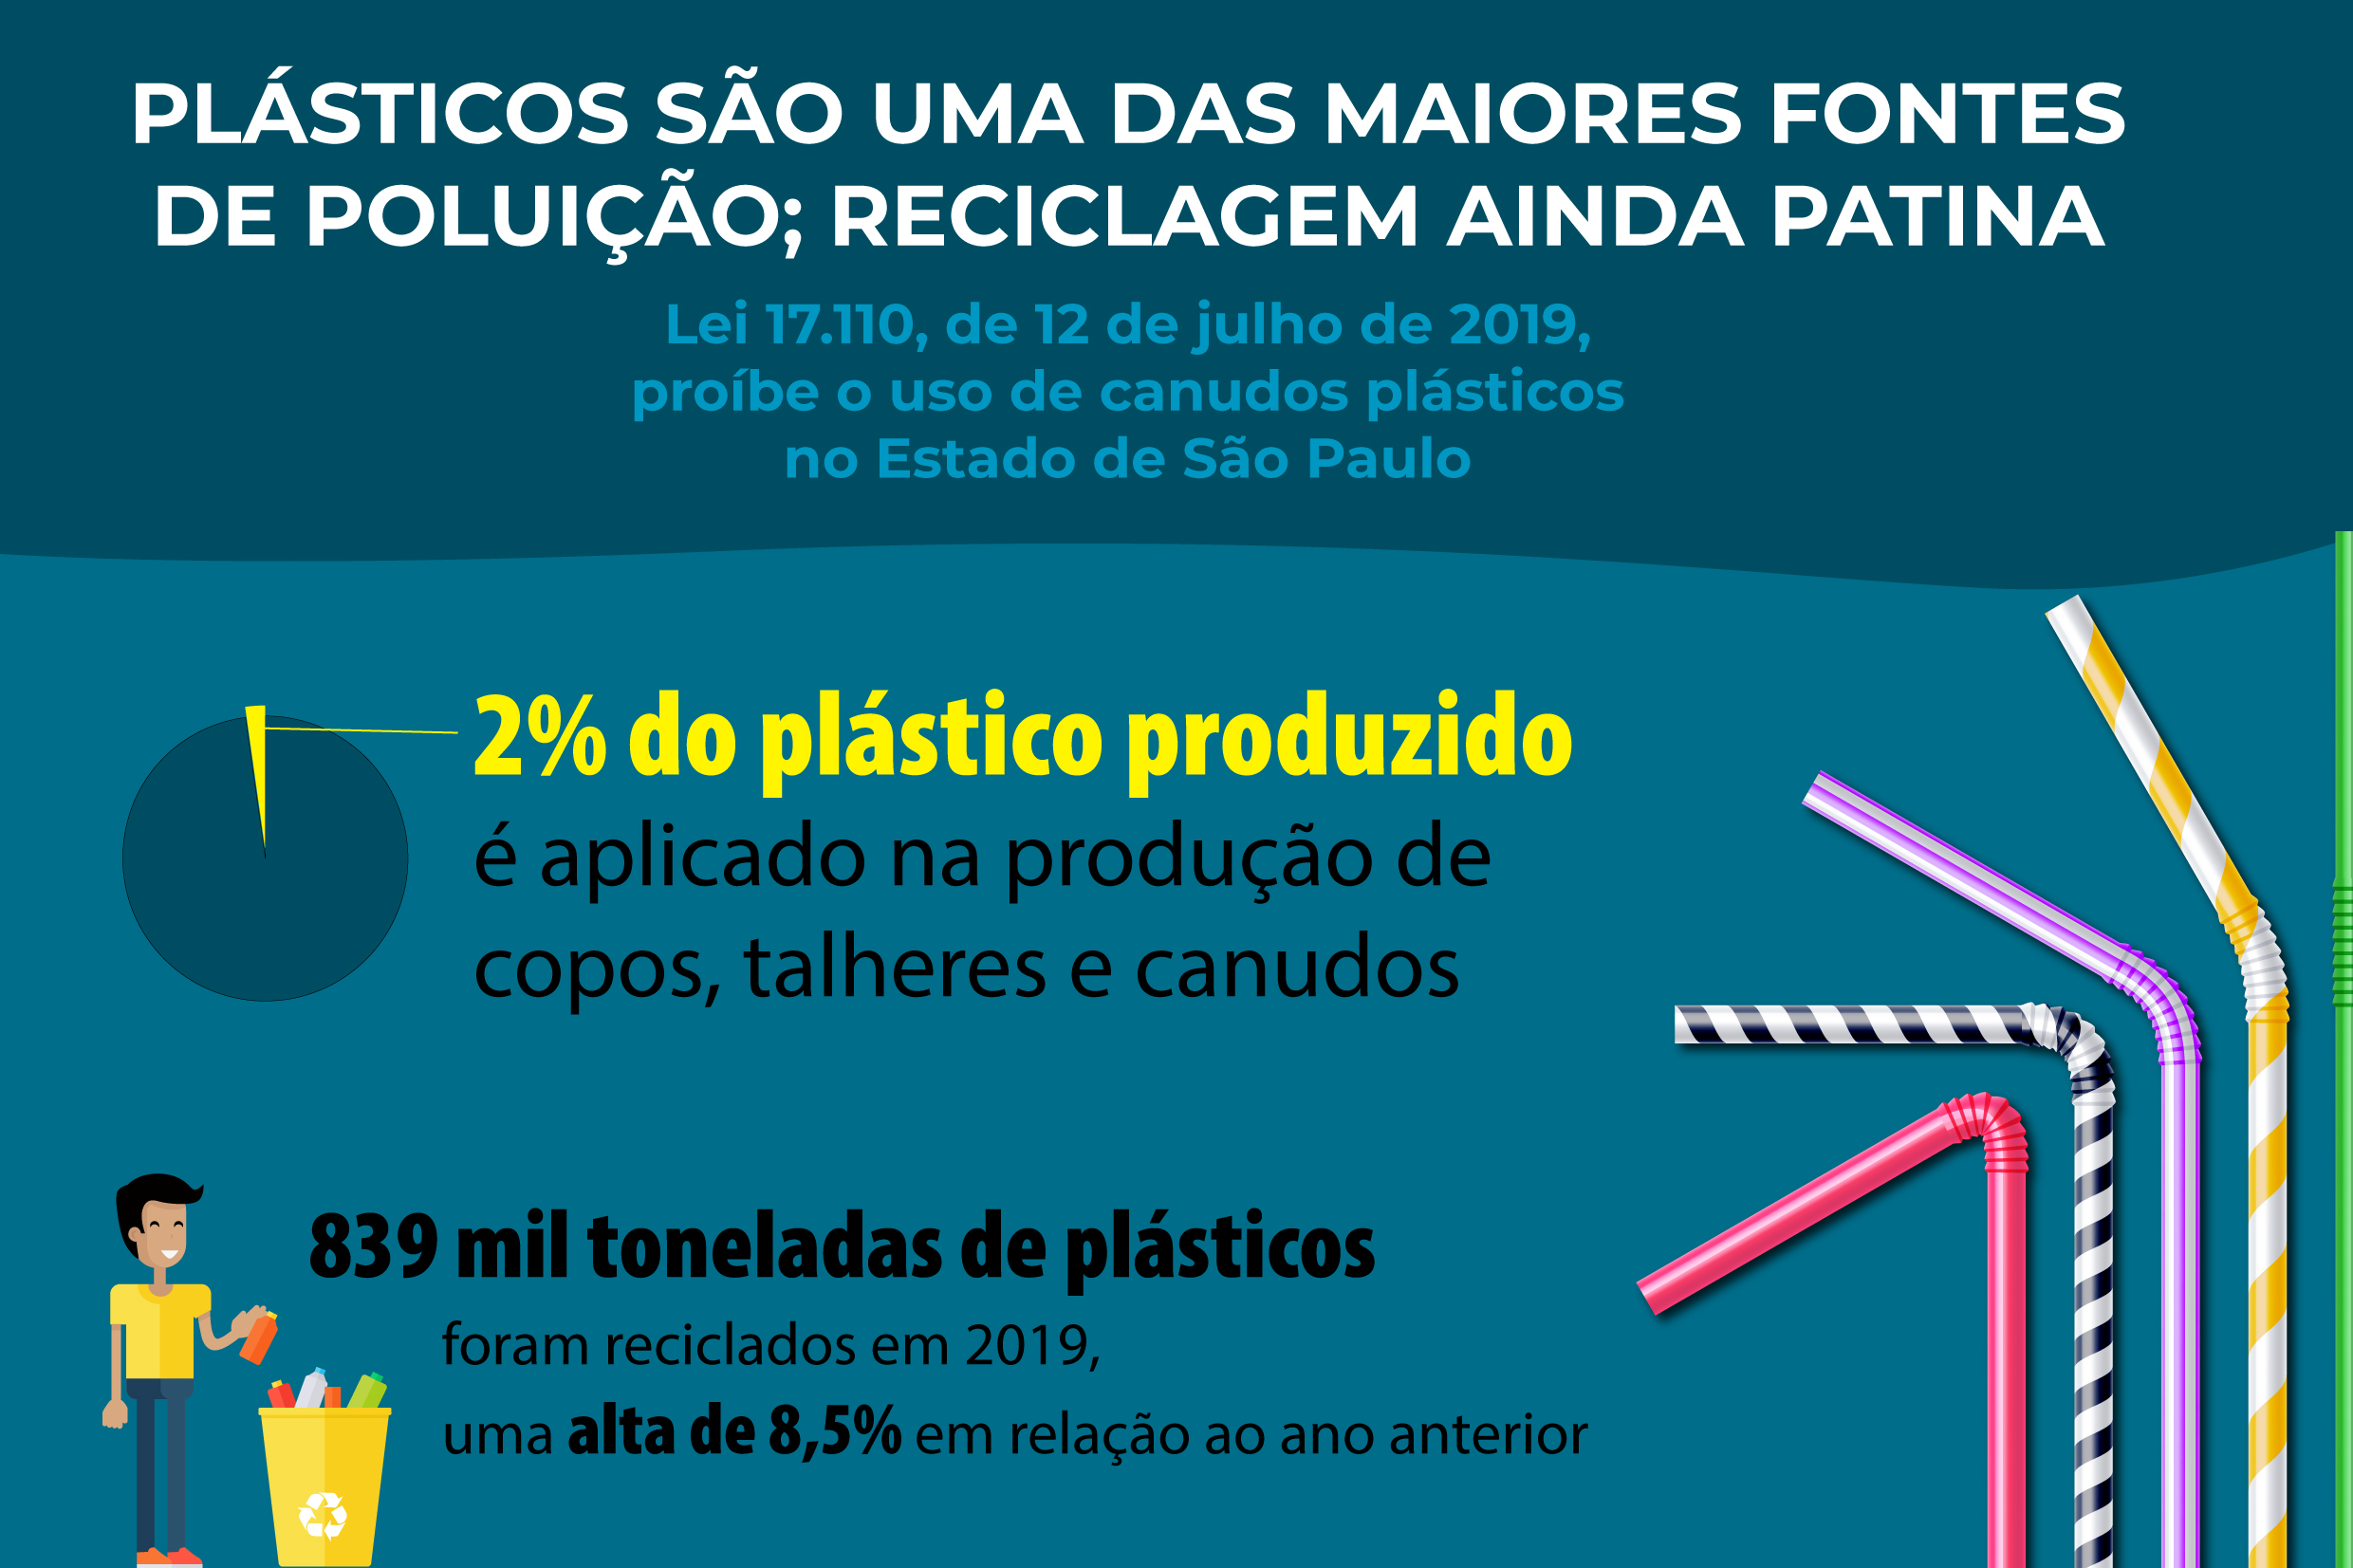 Infográfico <a style='float:right' href='https://www3.al.sp.gov.br/repositorio/noticia/N-07-2021/fg270992.jpg' target=_blank><img src='/_img/material-file-download-white.png' width='14px' alt='Clique para baixar a imagem'></a>